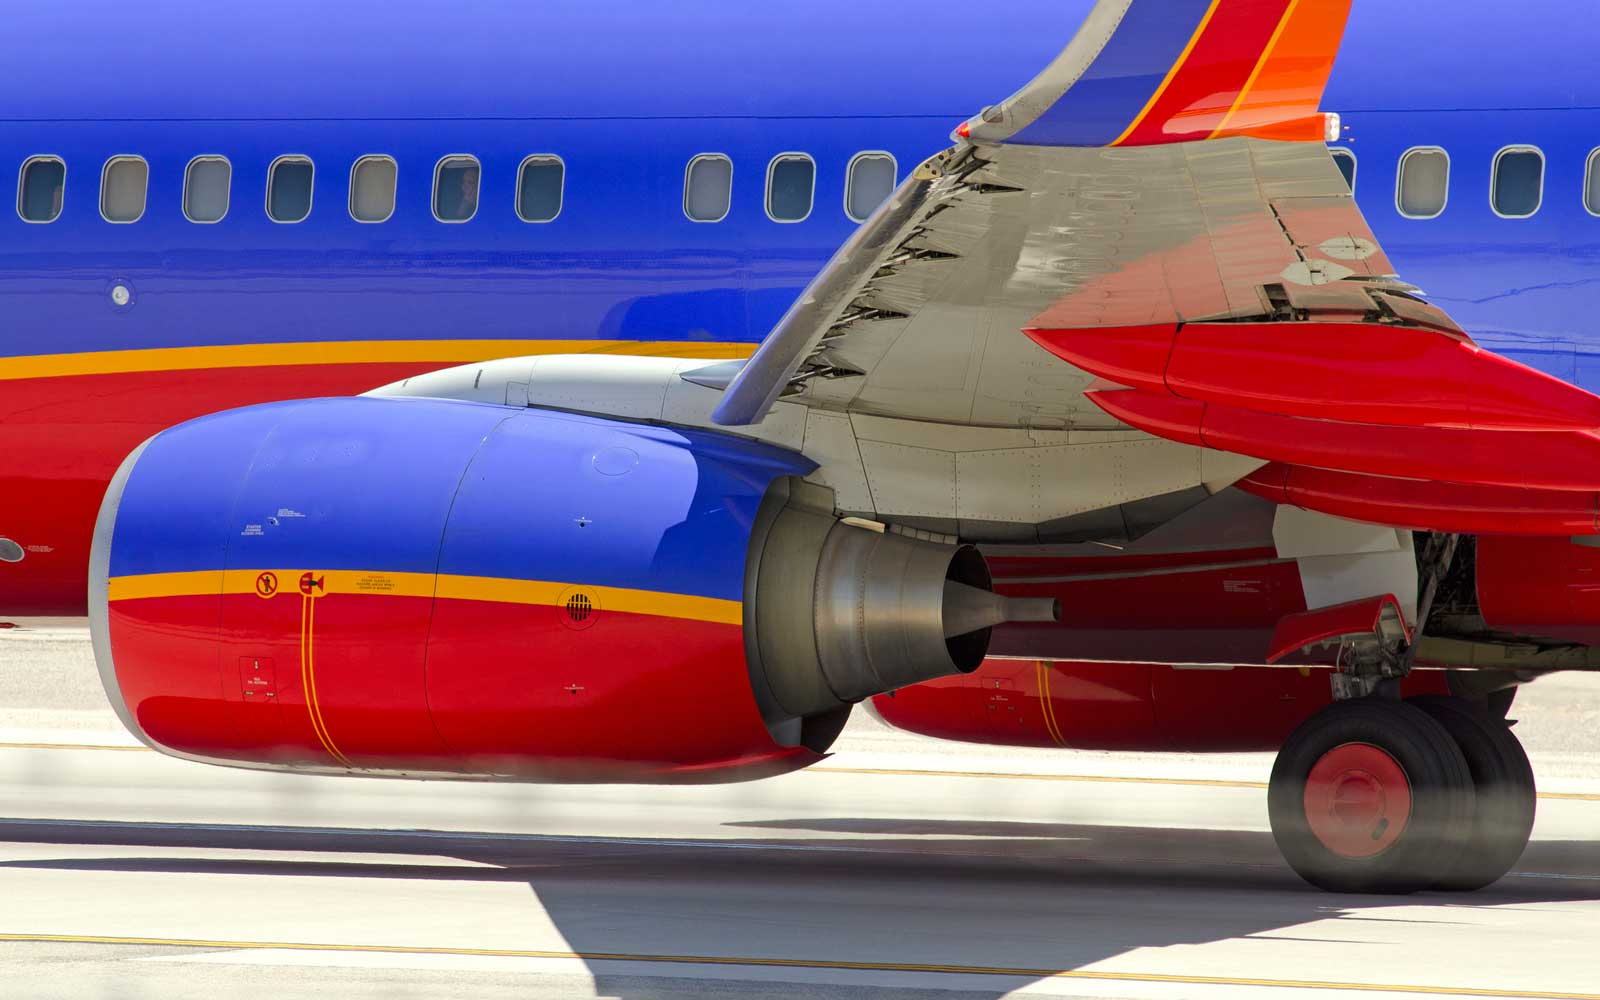 Man Is Suing Southwest for Causing 'Mental Anguish' After Landing at the Wrong Airport